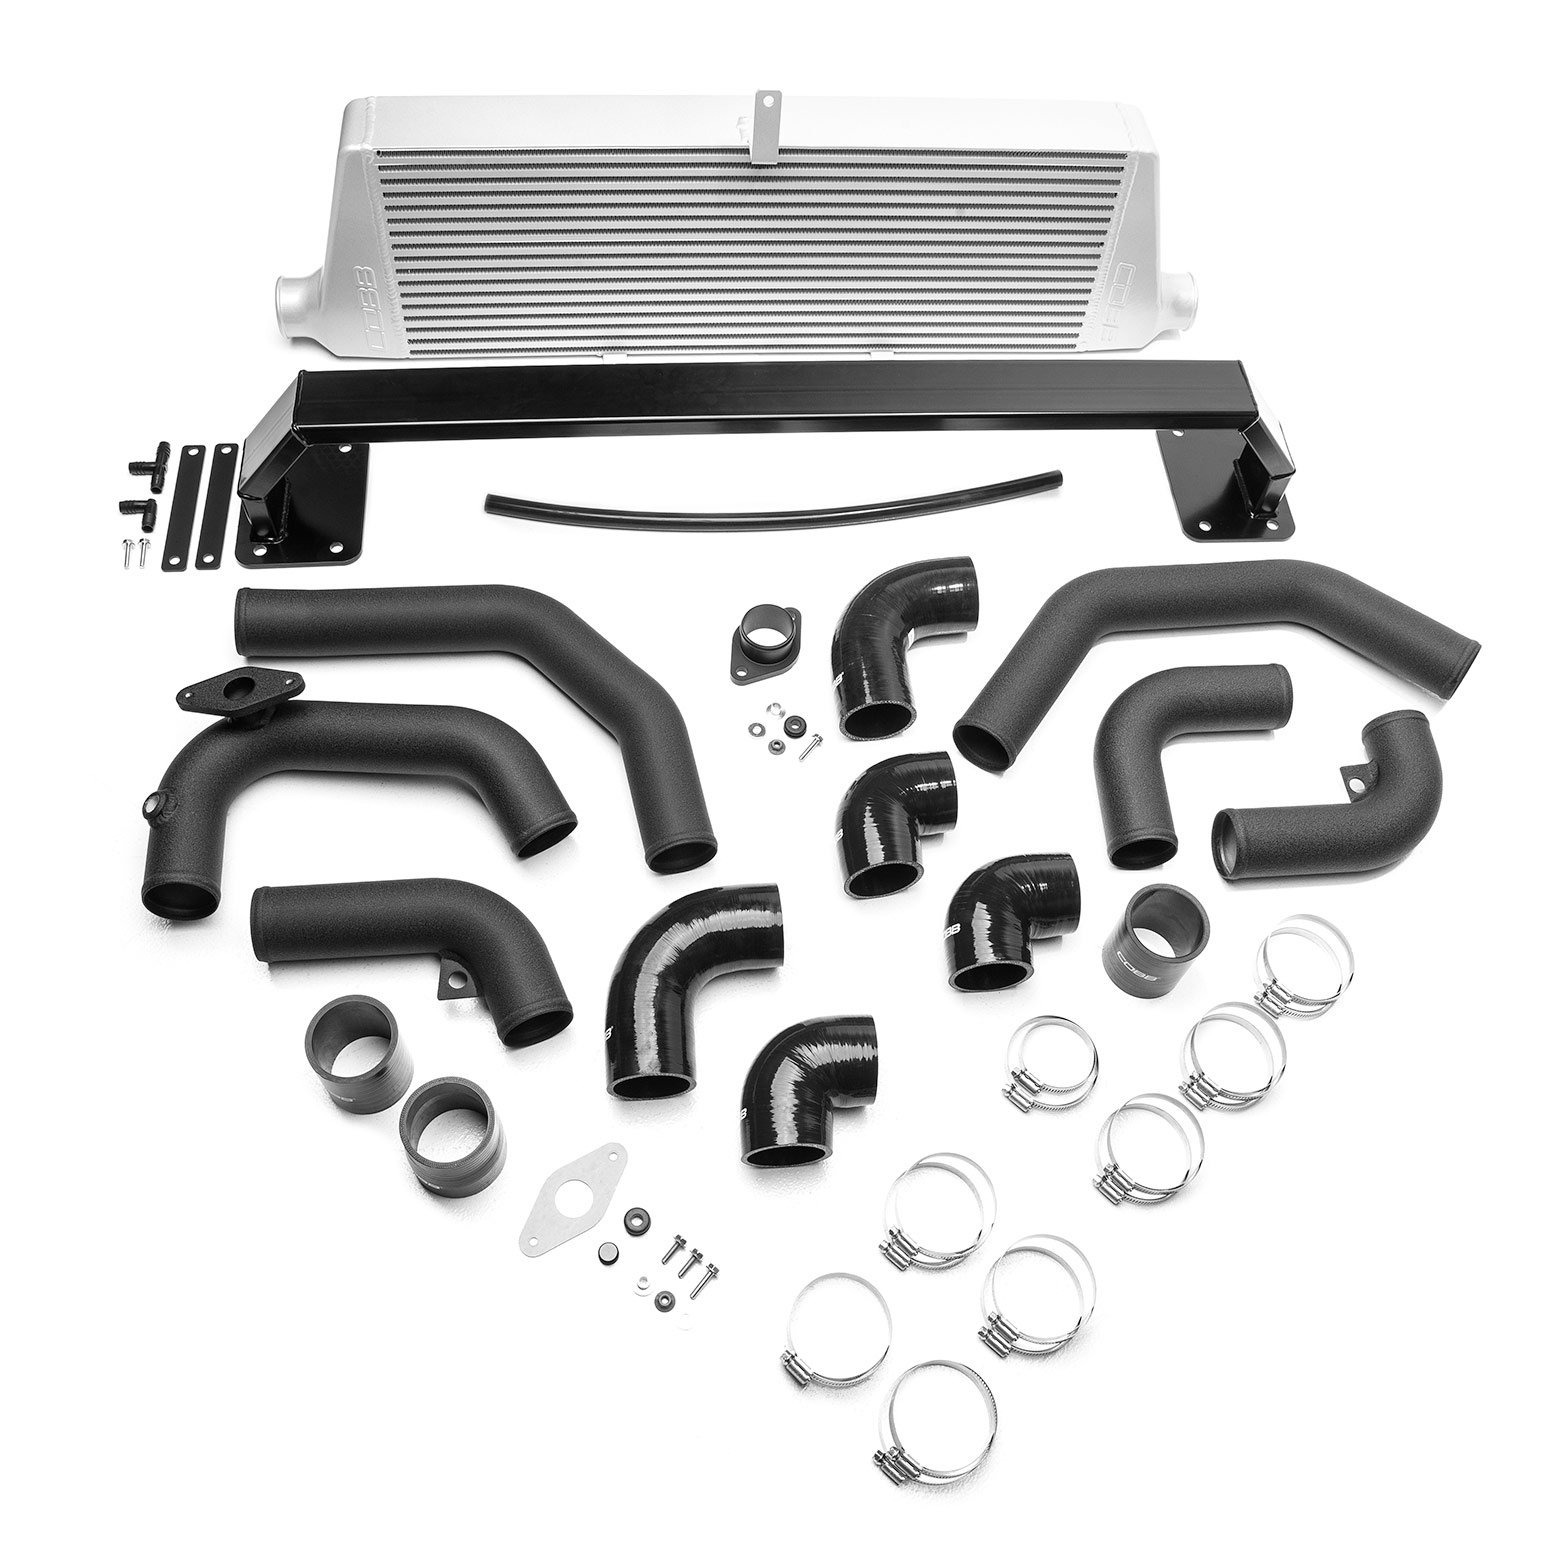 COBB Front Mount Intercooler Kit (Silver) WRX 2008-2014